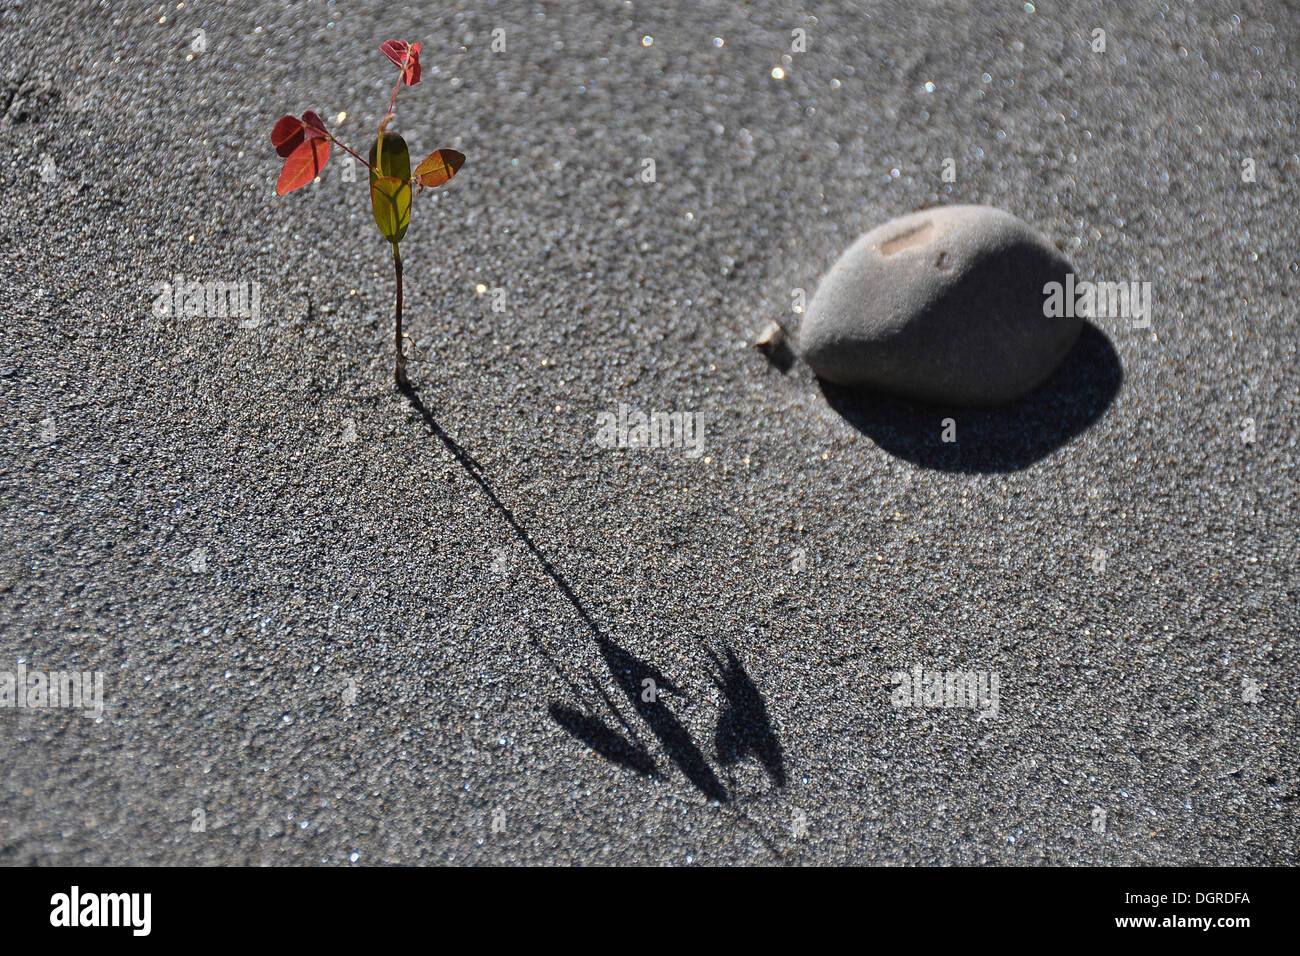 Seedling growing in the desert sand - Stock Image